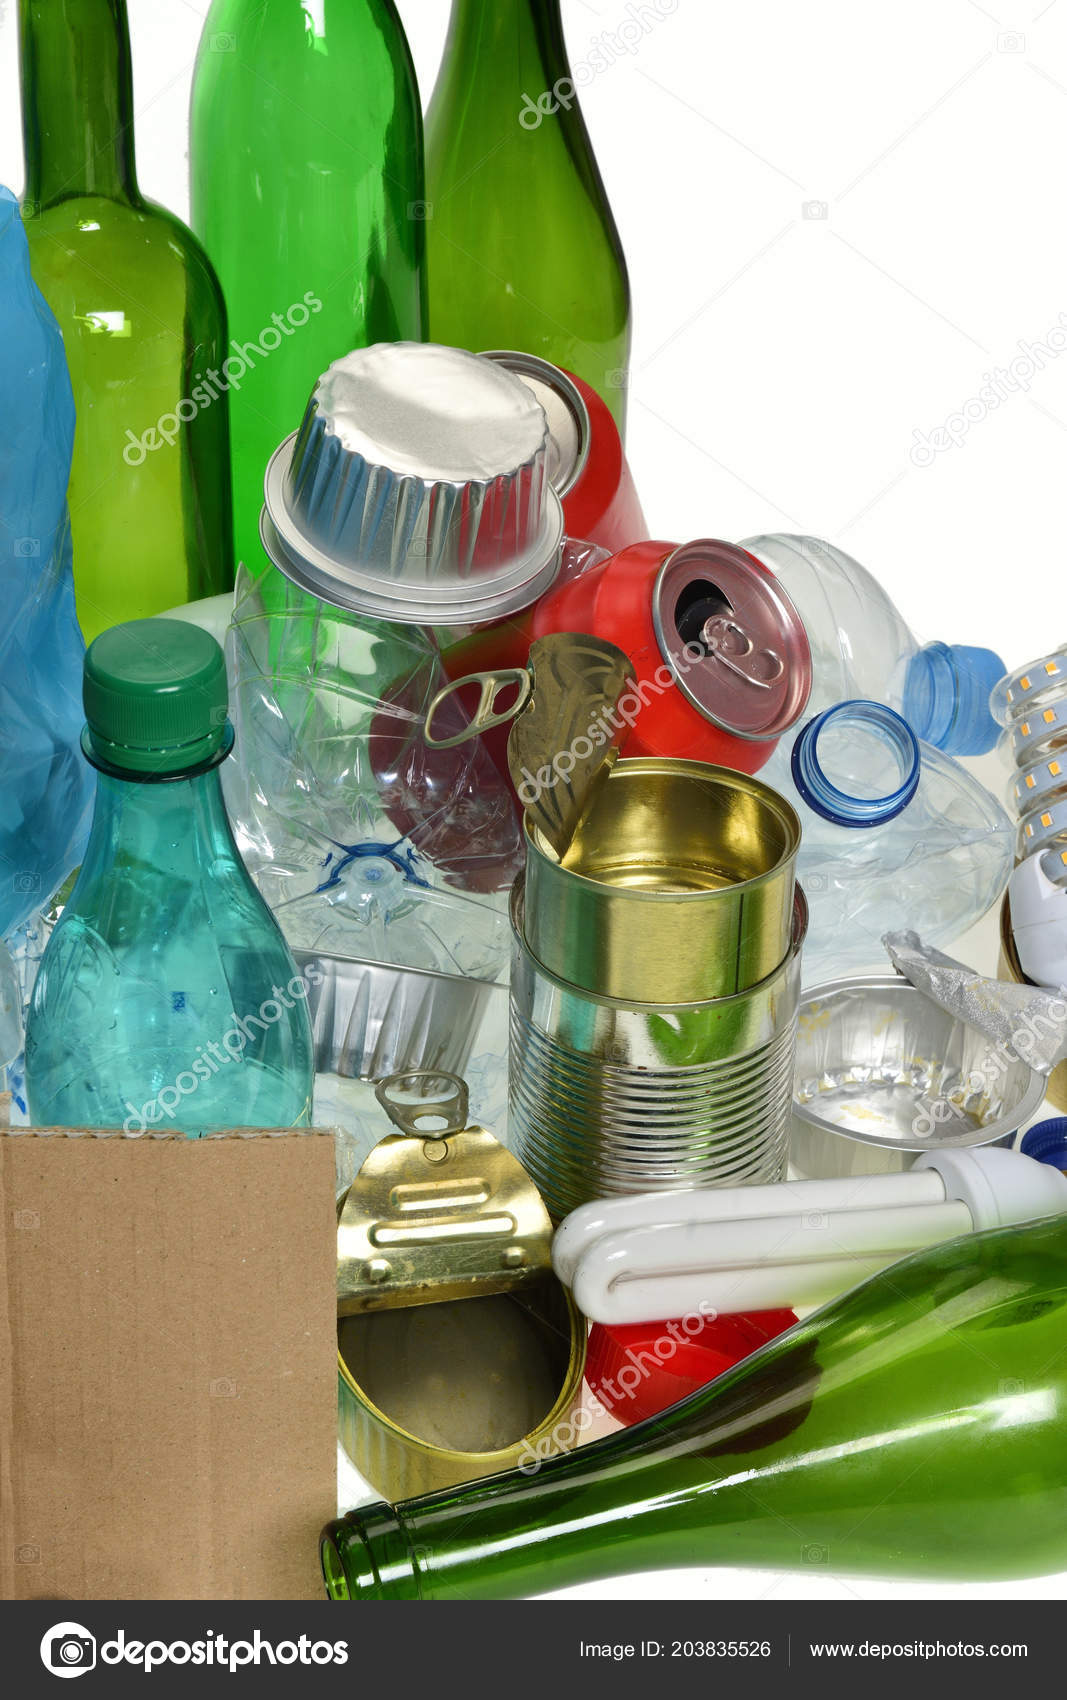 Recycled Plastic Bottle Lamp Recycling Glass Bottles Cans Plastic Bottle Bulb Stock Photo